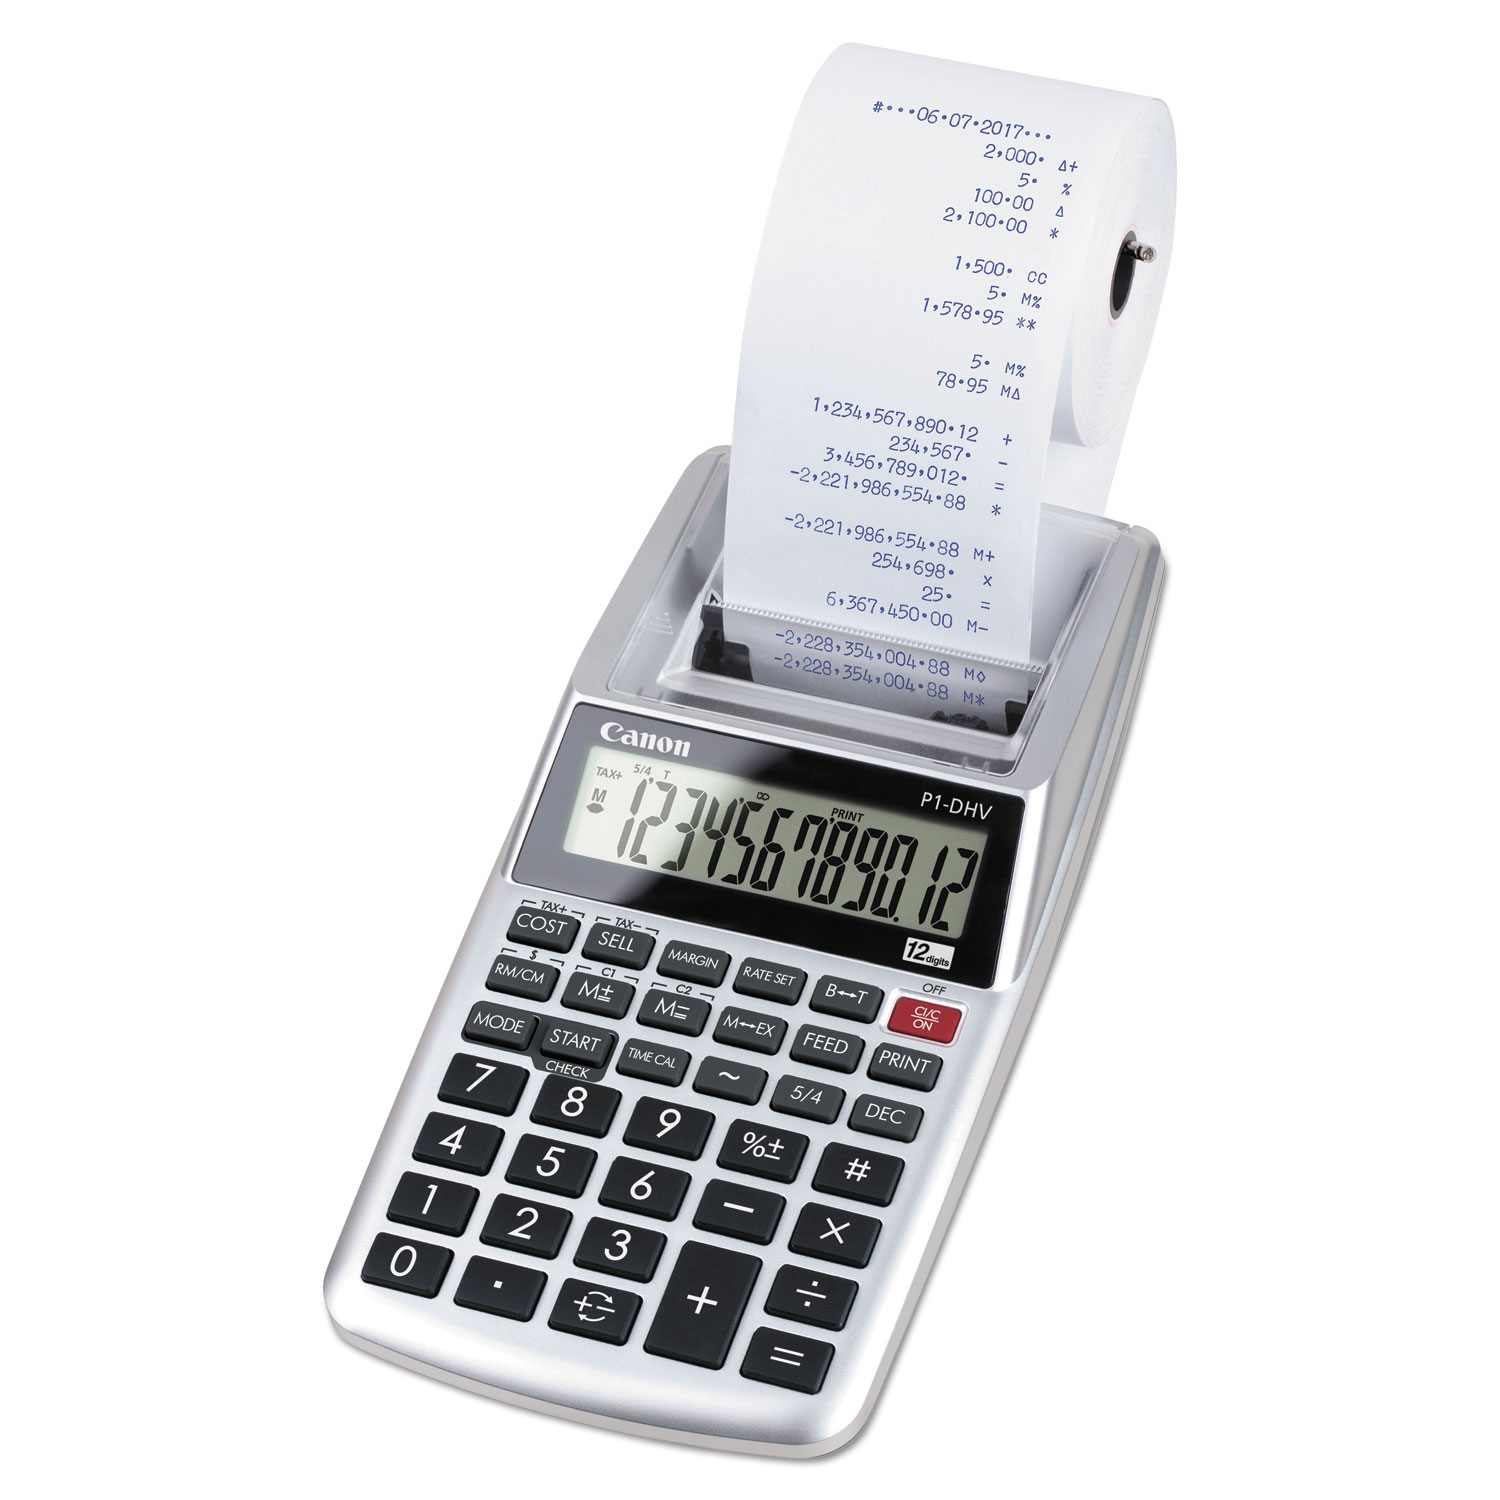 P1-DHV 12-Digit Palm Printing Calculator, Purple Print, 2 Lines/Sec